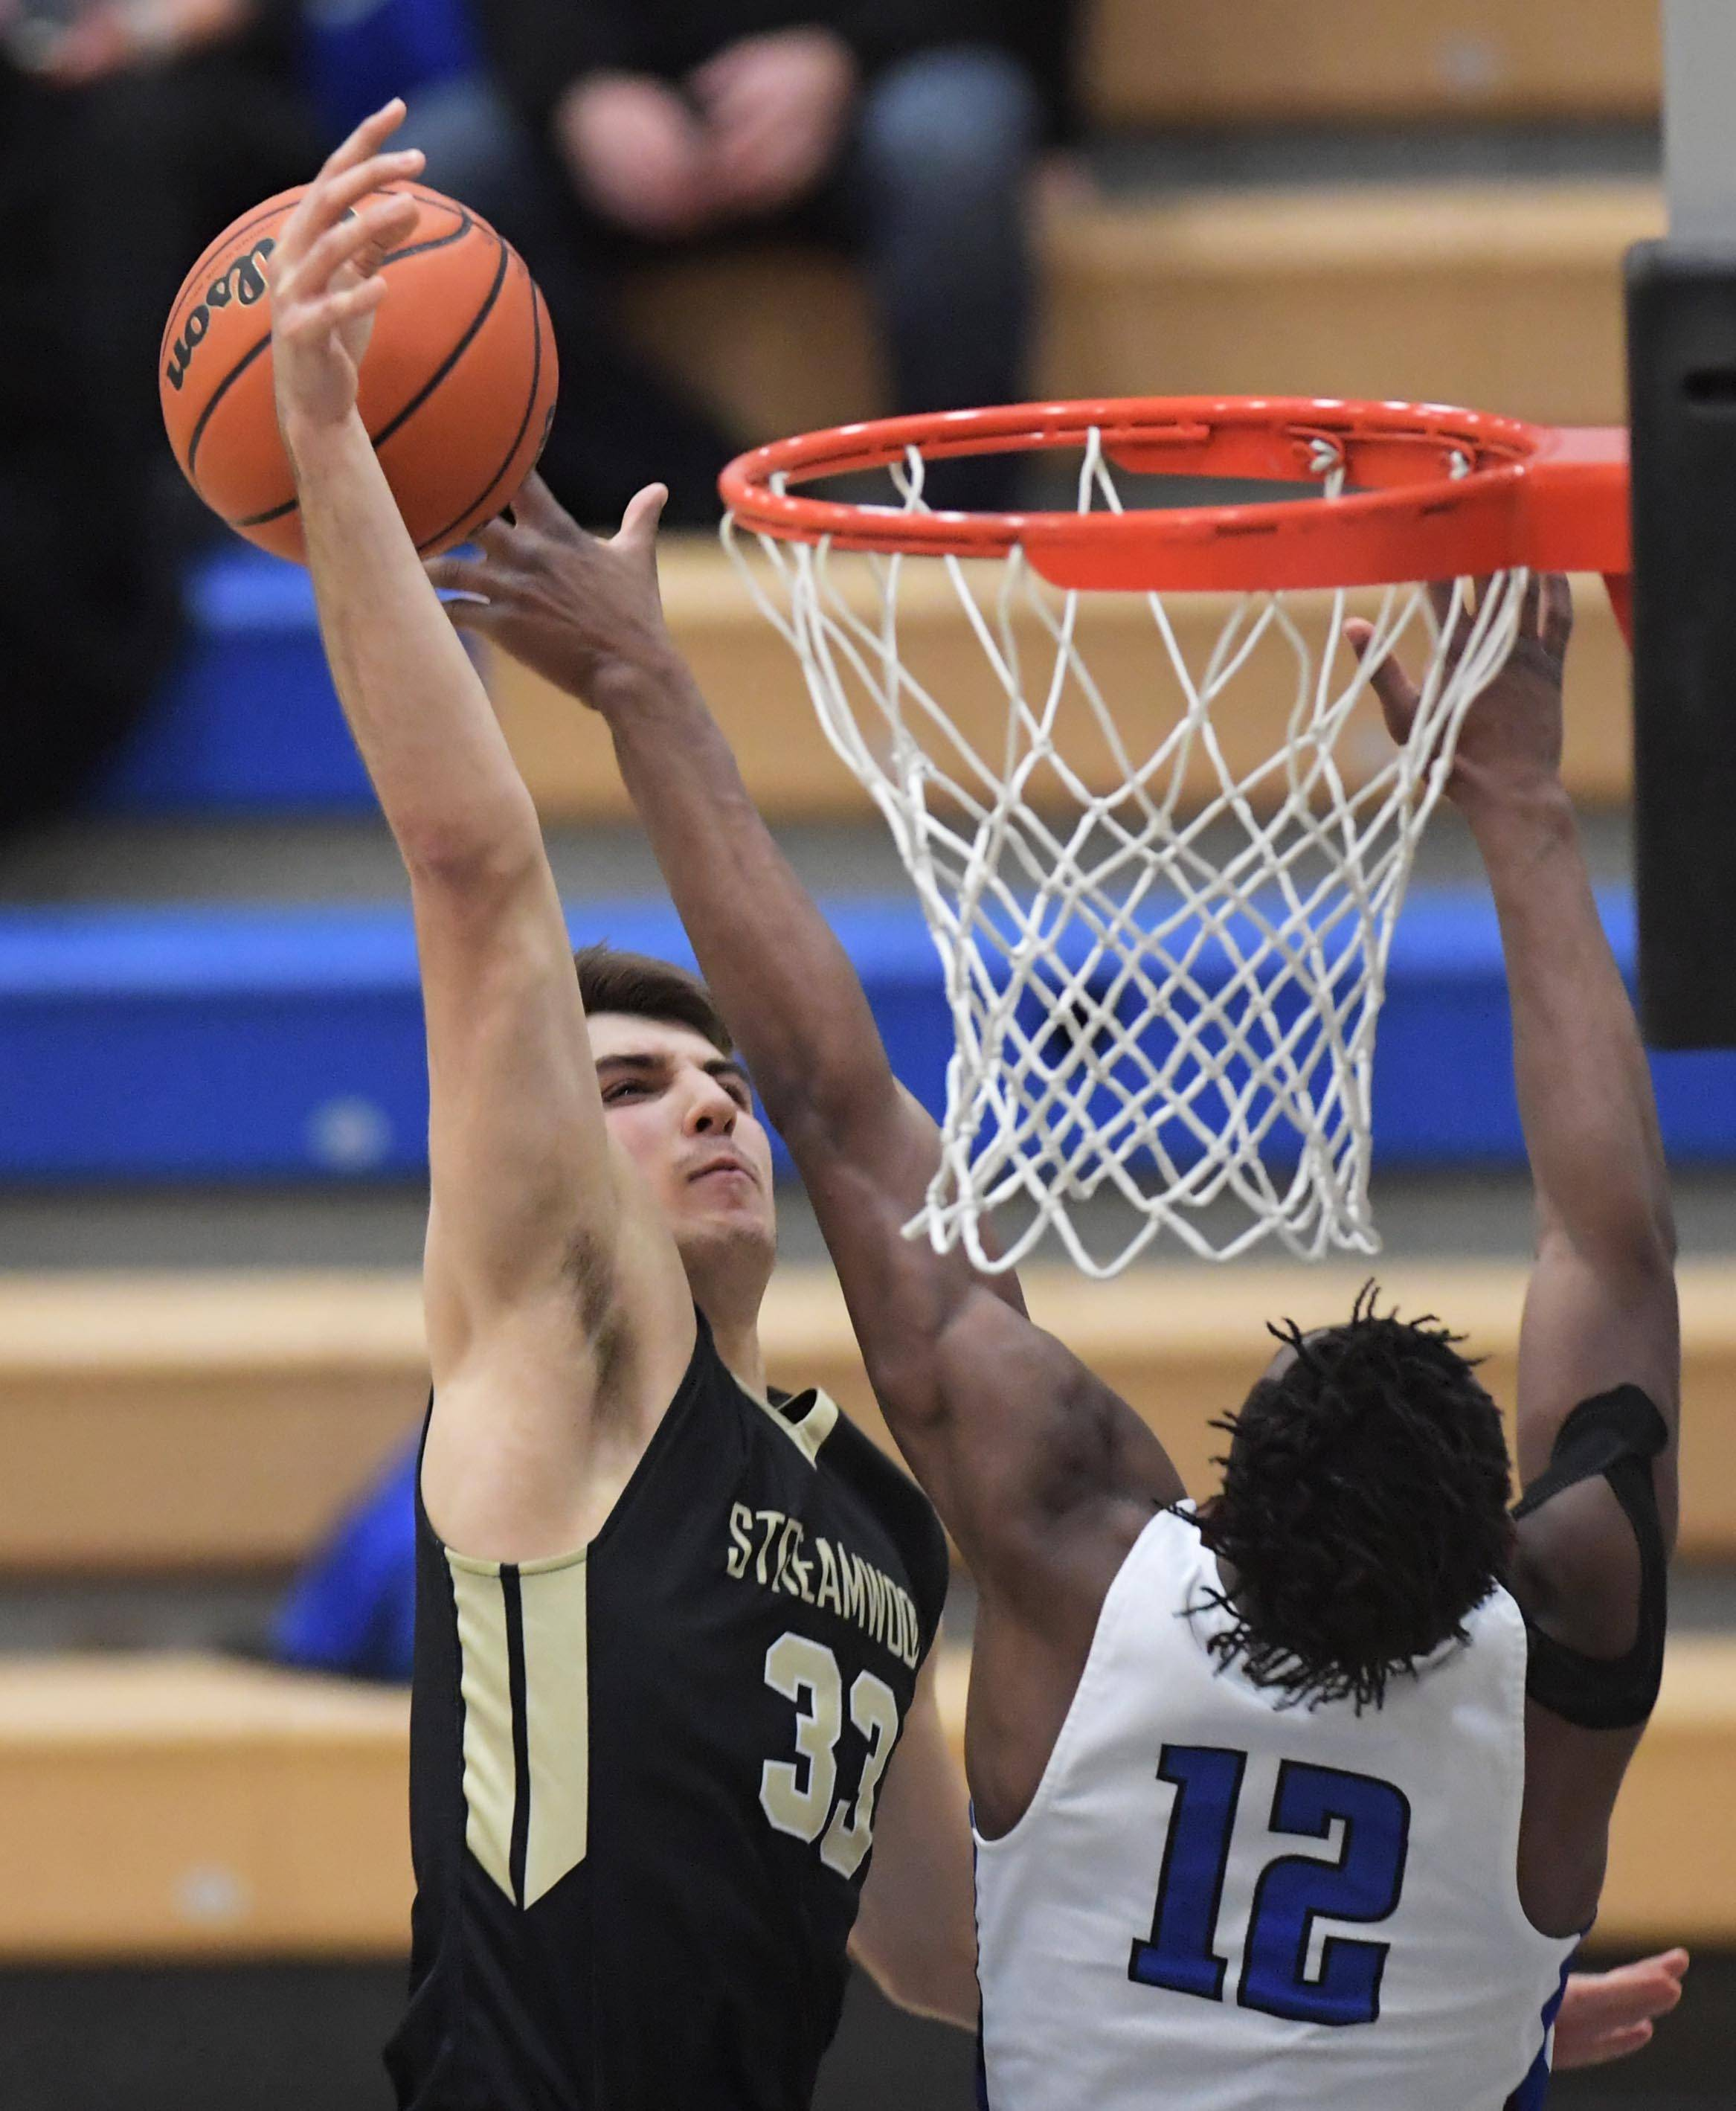 St. Charles North's Tyler Nubin blocks a shot by Streamwood's Brendon Marton Wednesday in a boys basketball game in St. Charles.